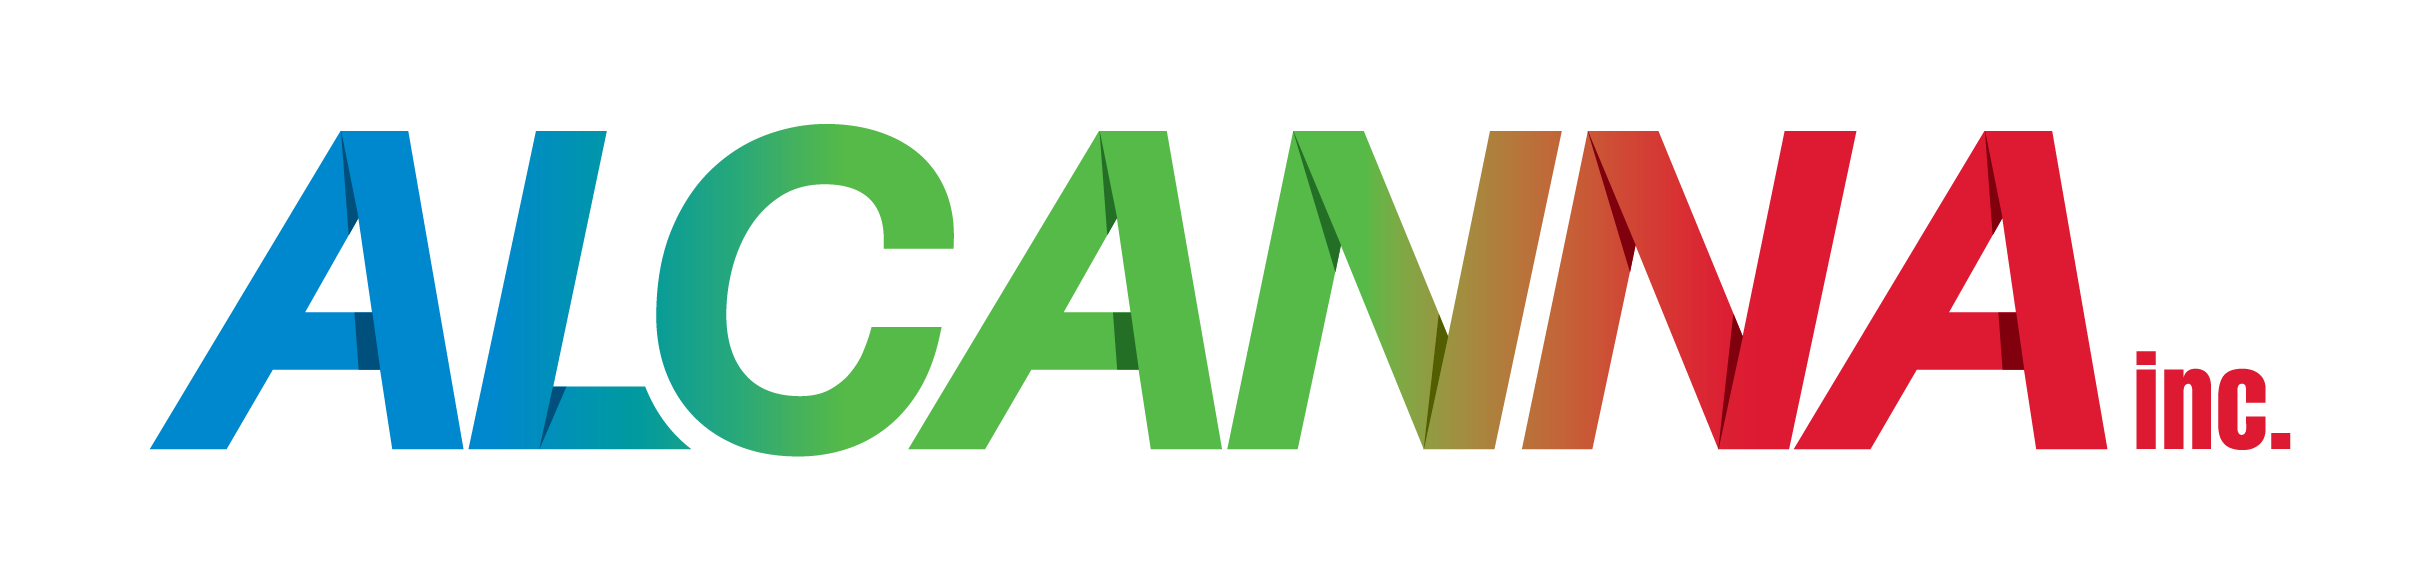 Alcanna Welcomes Ontario Government Cannabis Retail Announcement